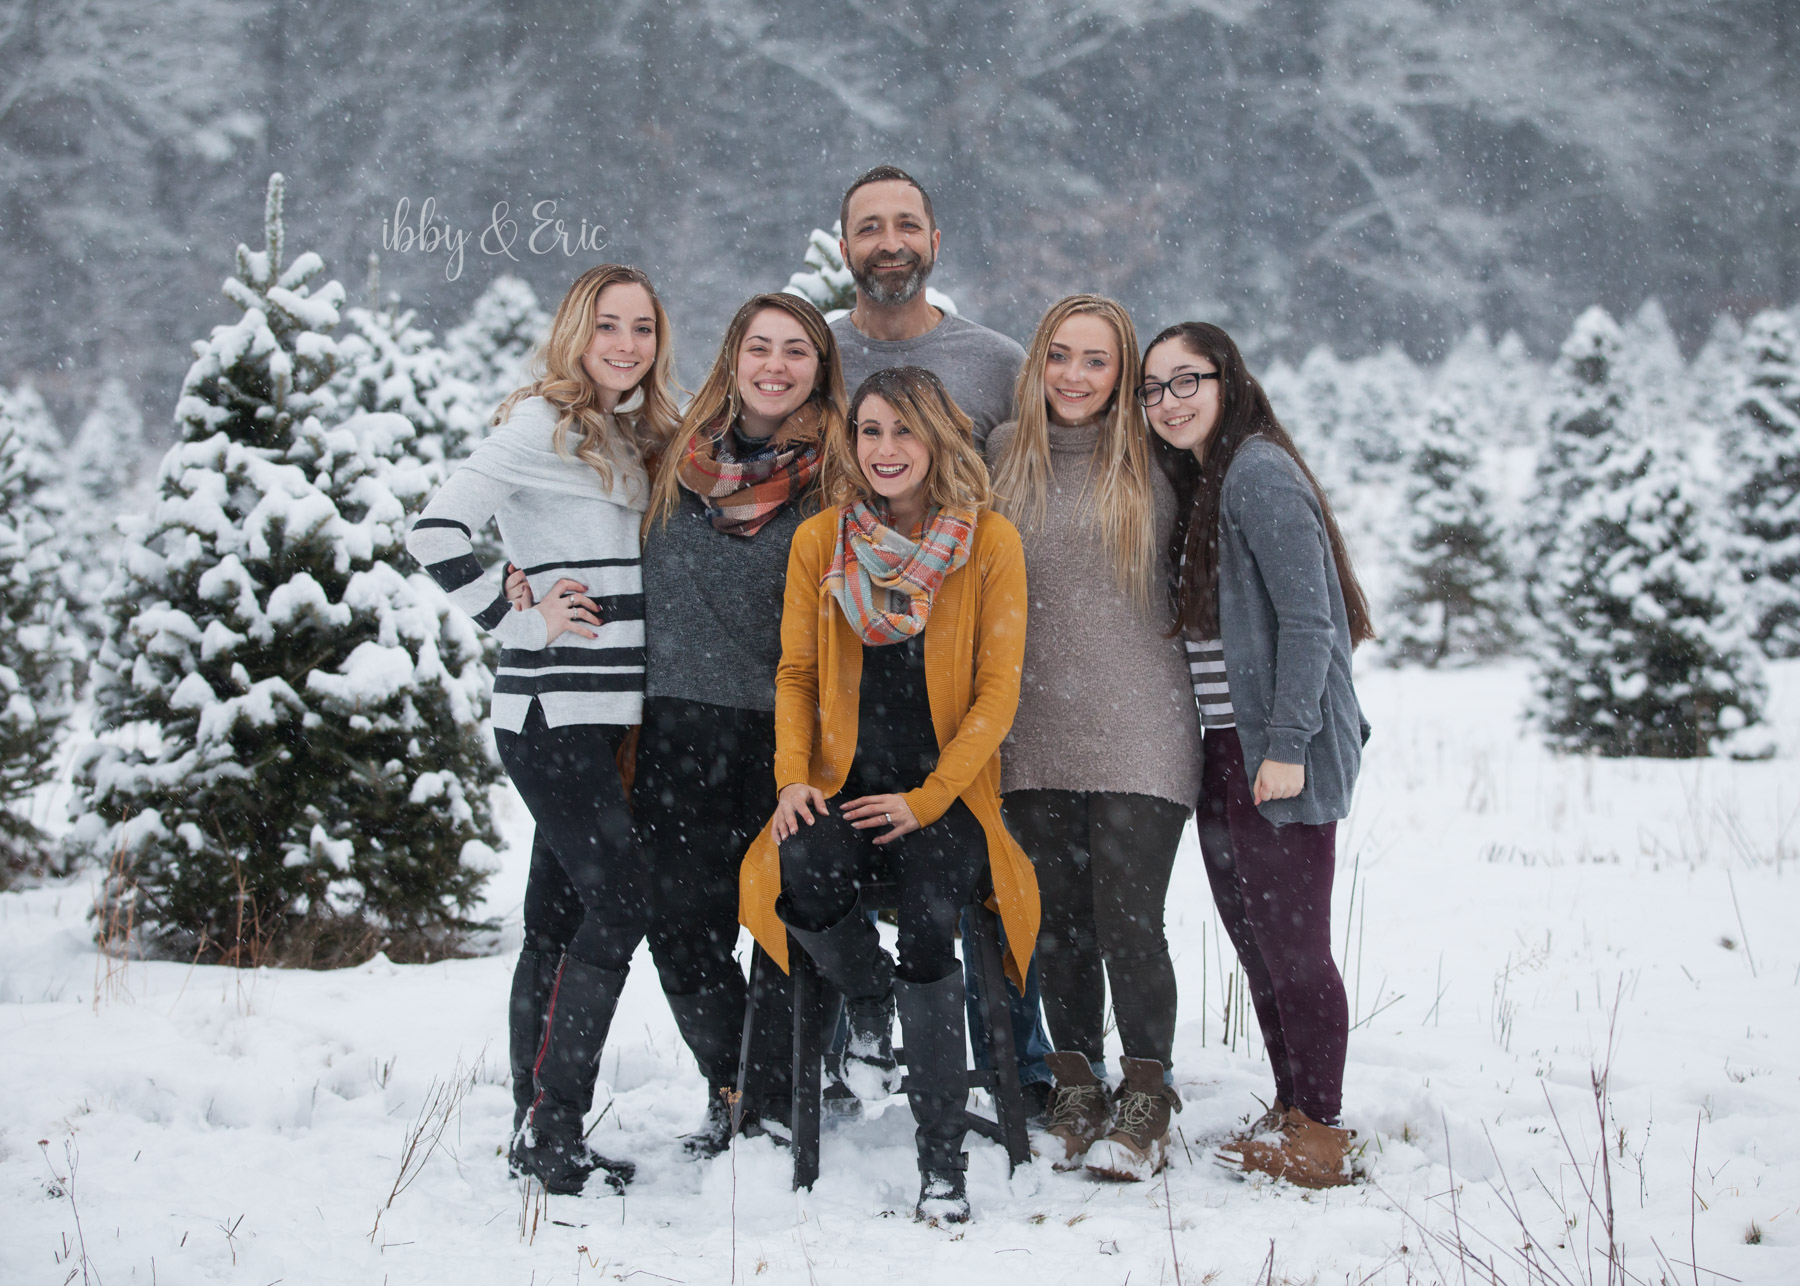 4 girls hug their dad & surround their step mom wearing mustard yellow during a snowstorm in western Massachusetts.